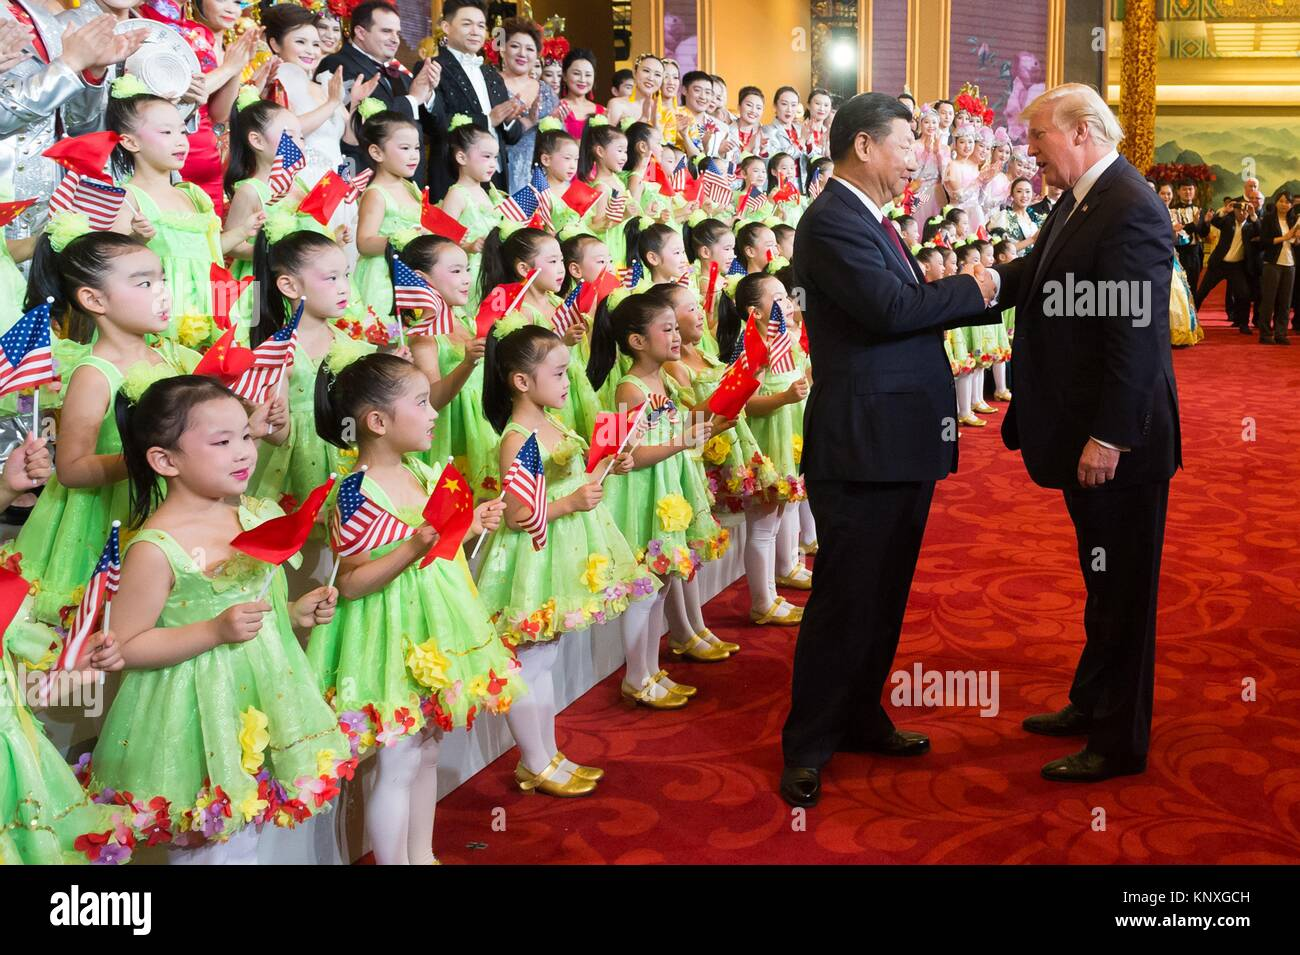 U.S. President Donald Trump thanks Chinese President Xi Jinping following a cultural performance at the Great Hall - Stock Image